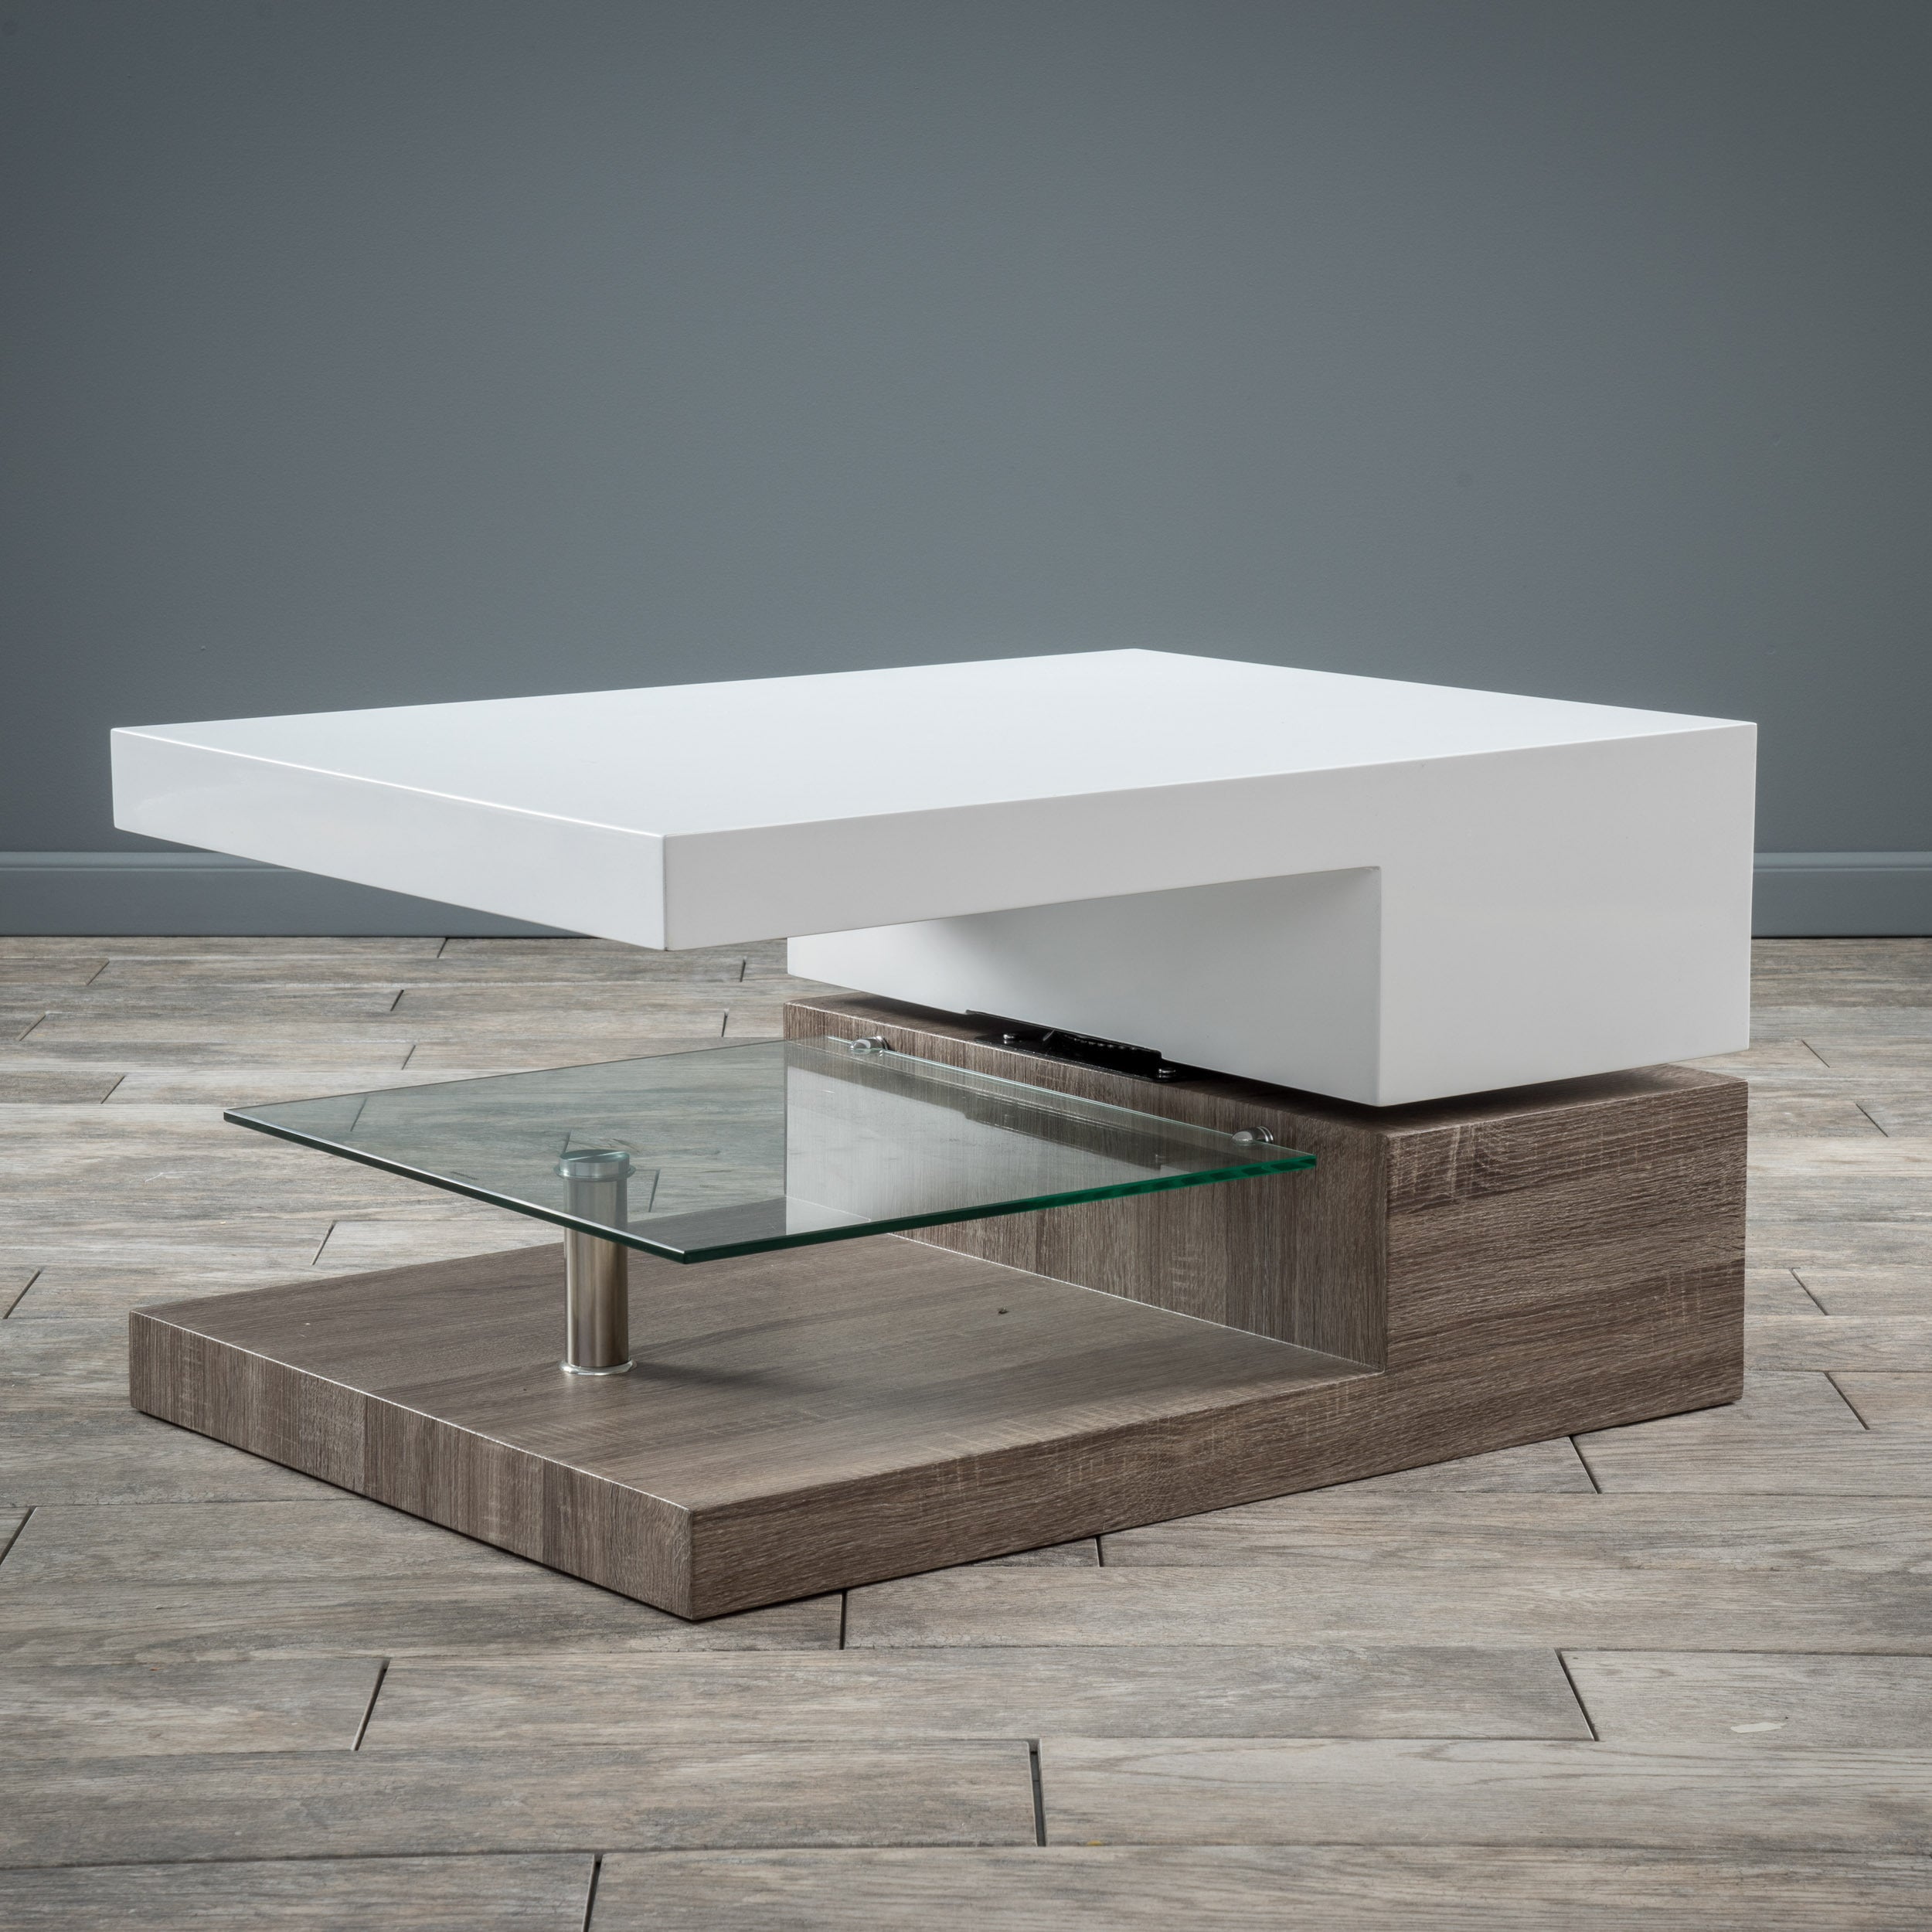 small rectangle coffee table. Shop Small Rectangular Mod Coffee Table With Glass By Christopher Knight Home - Free Shipping Today Overstock.com 9465631 Rectangle